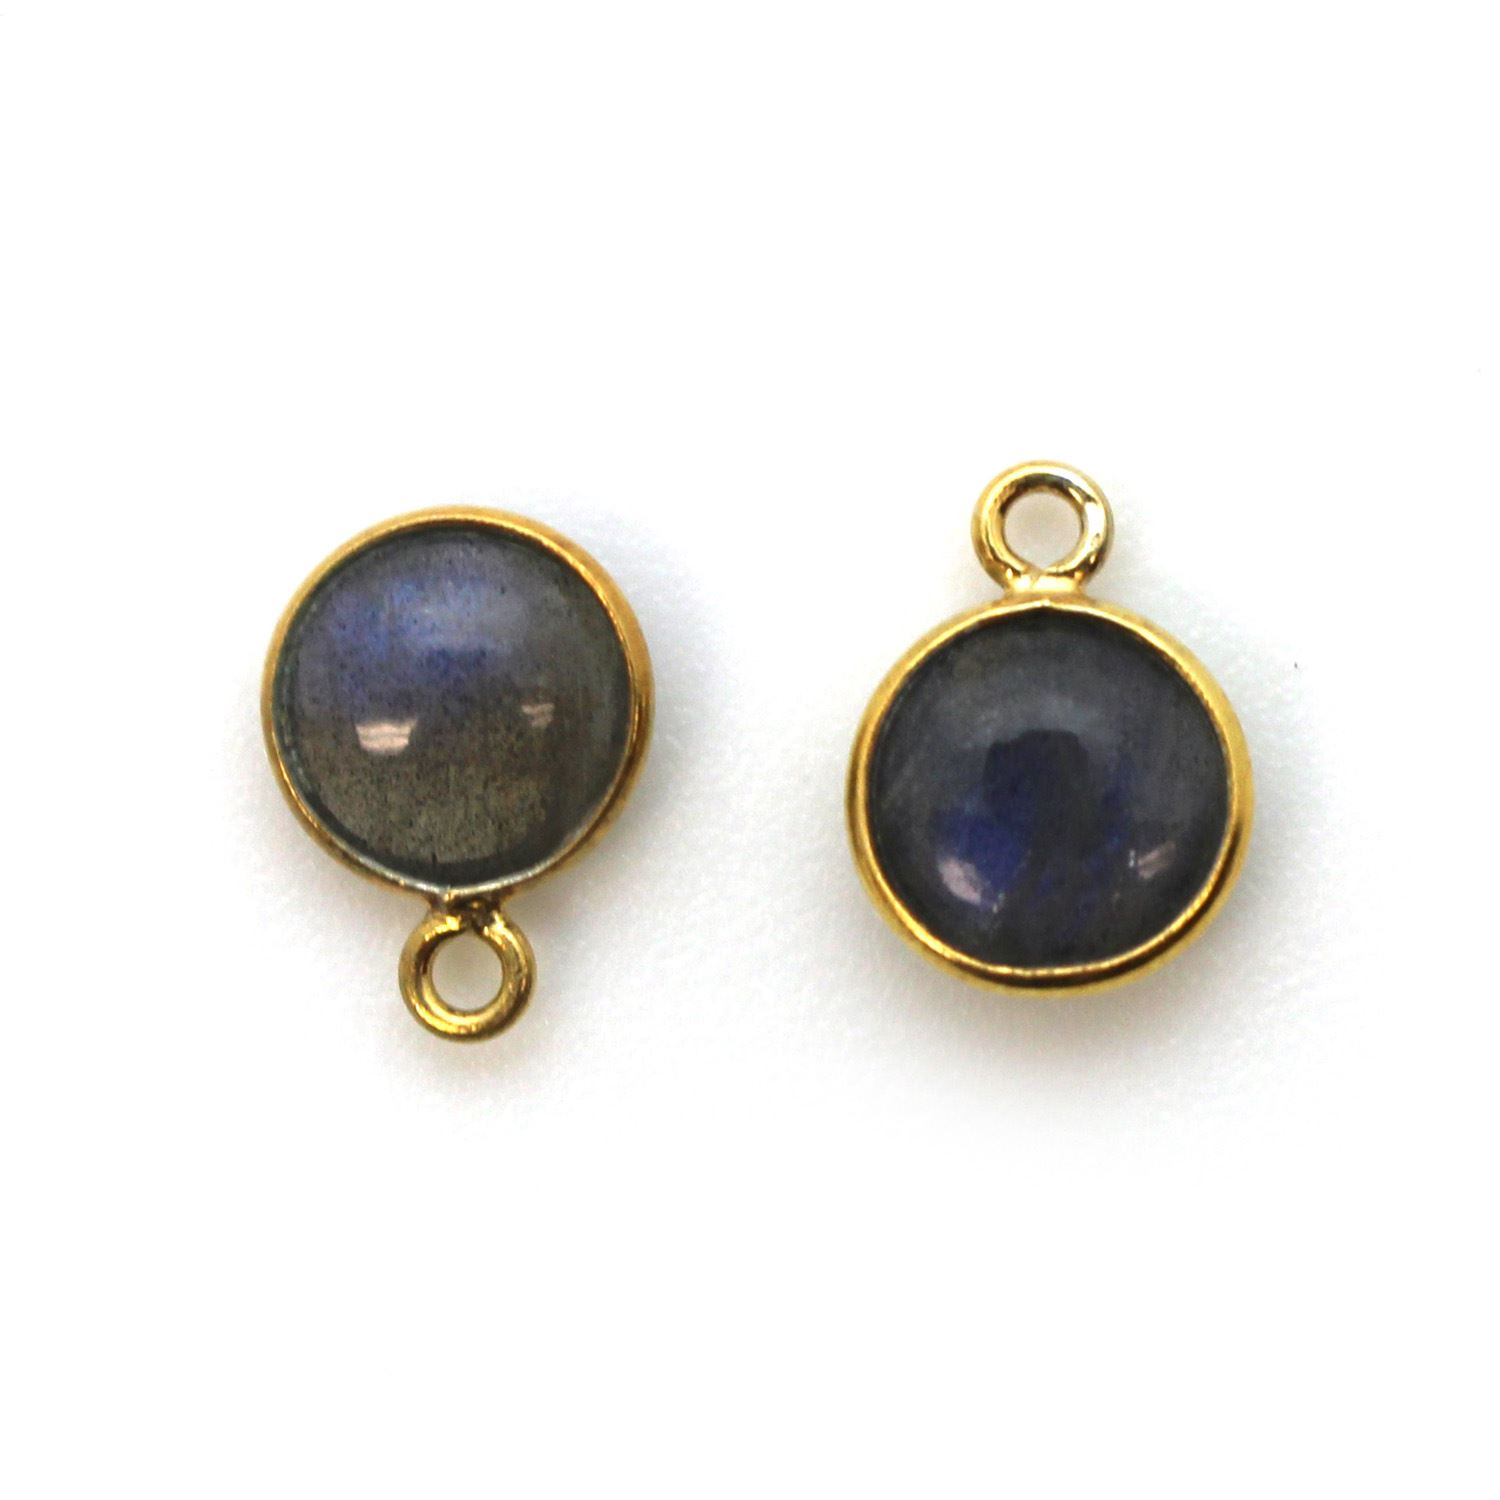 Bezel Charm Pendant - Gold Plated Sterling Silver Charm - Natural Labradorite - Tiny Round Shape